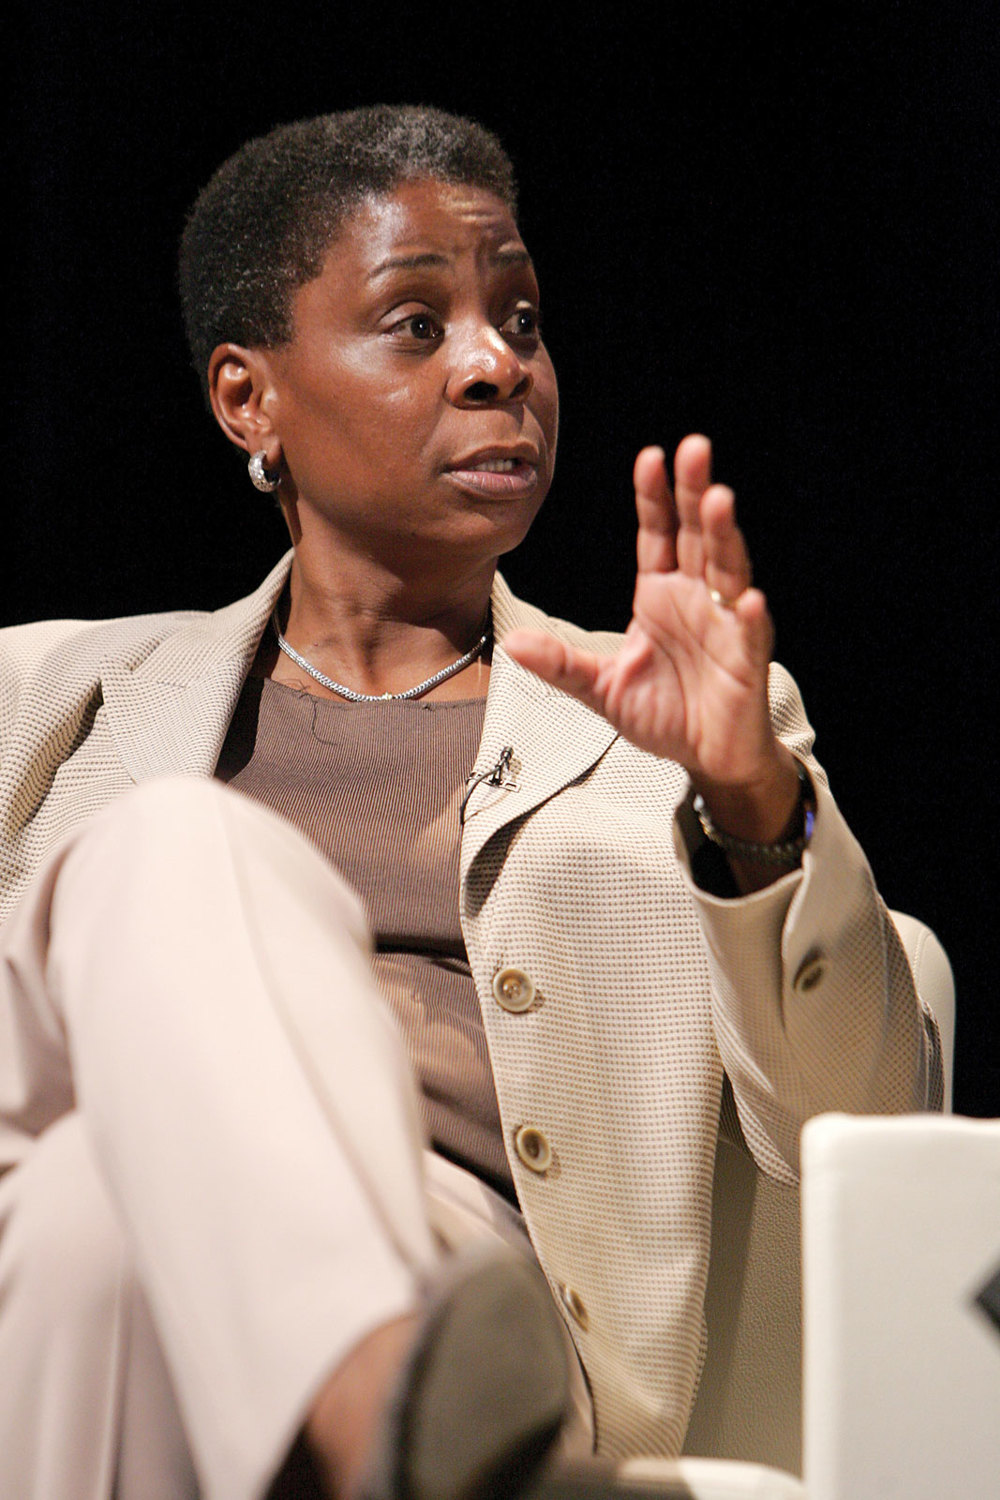 أورسولا بيرنز، Ursula Burns